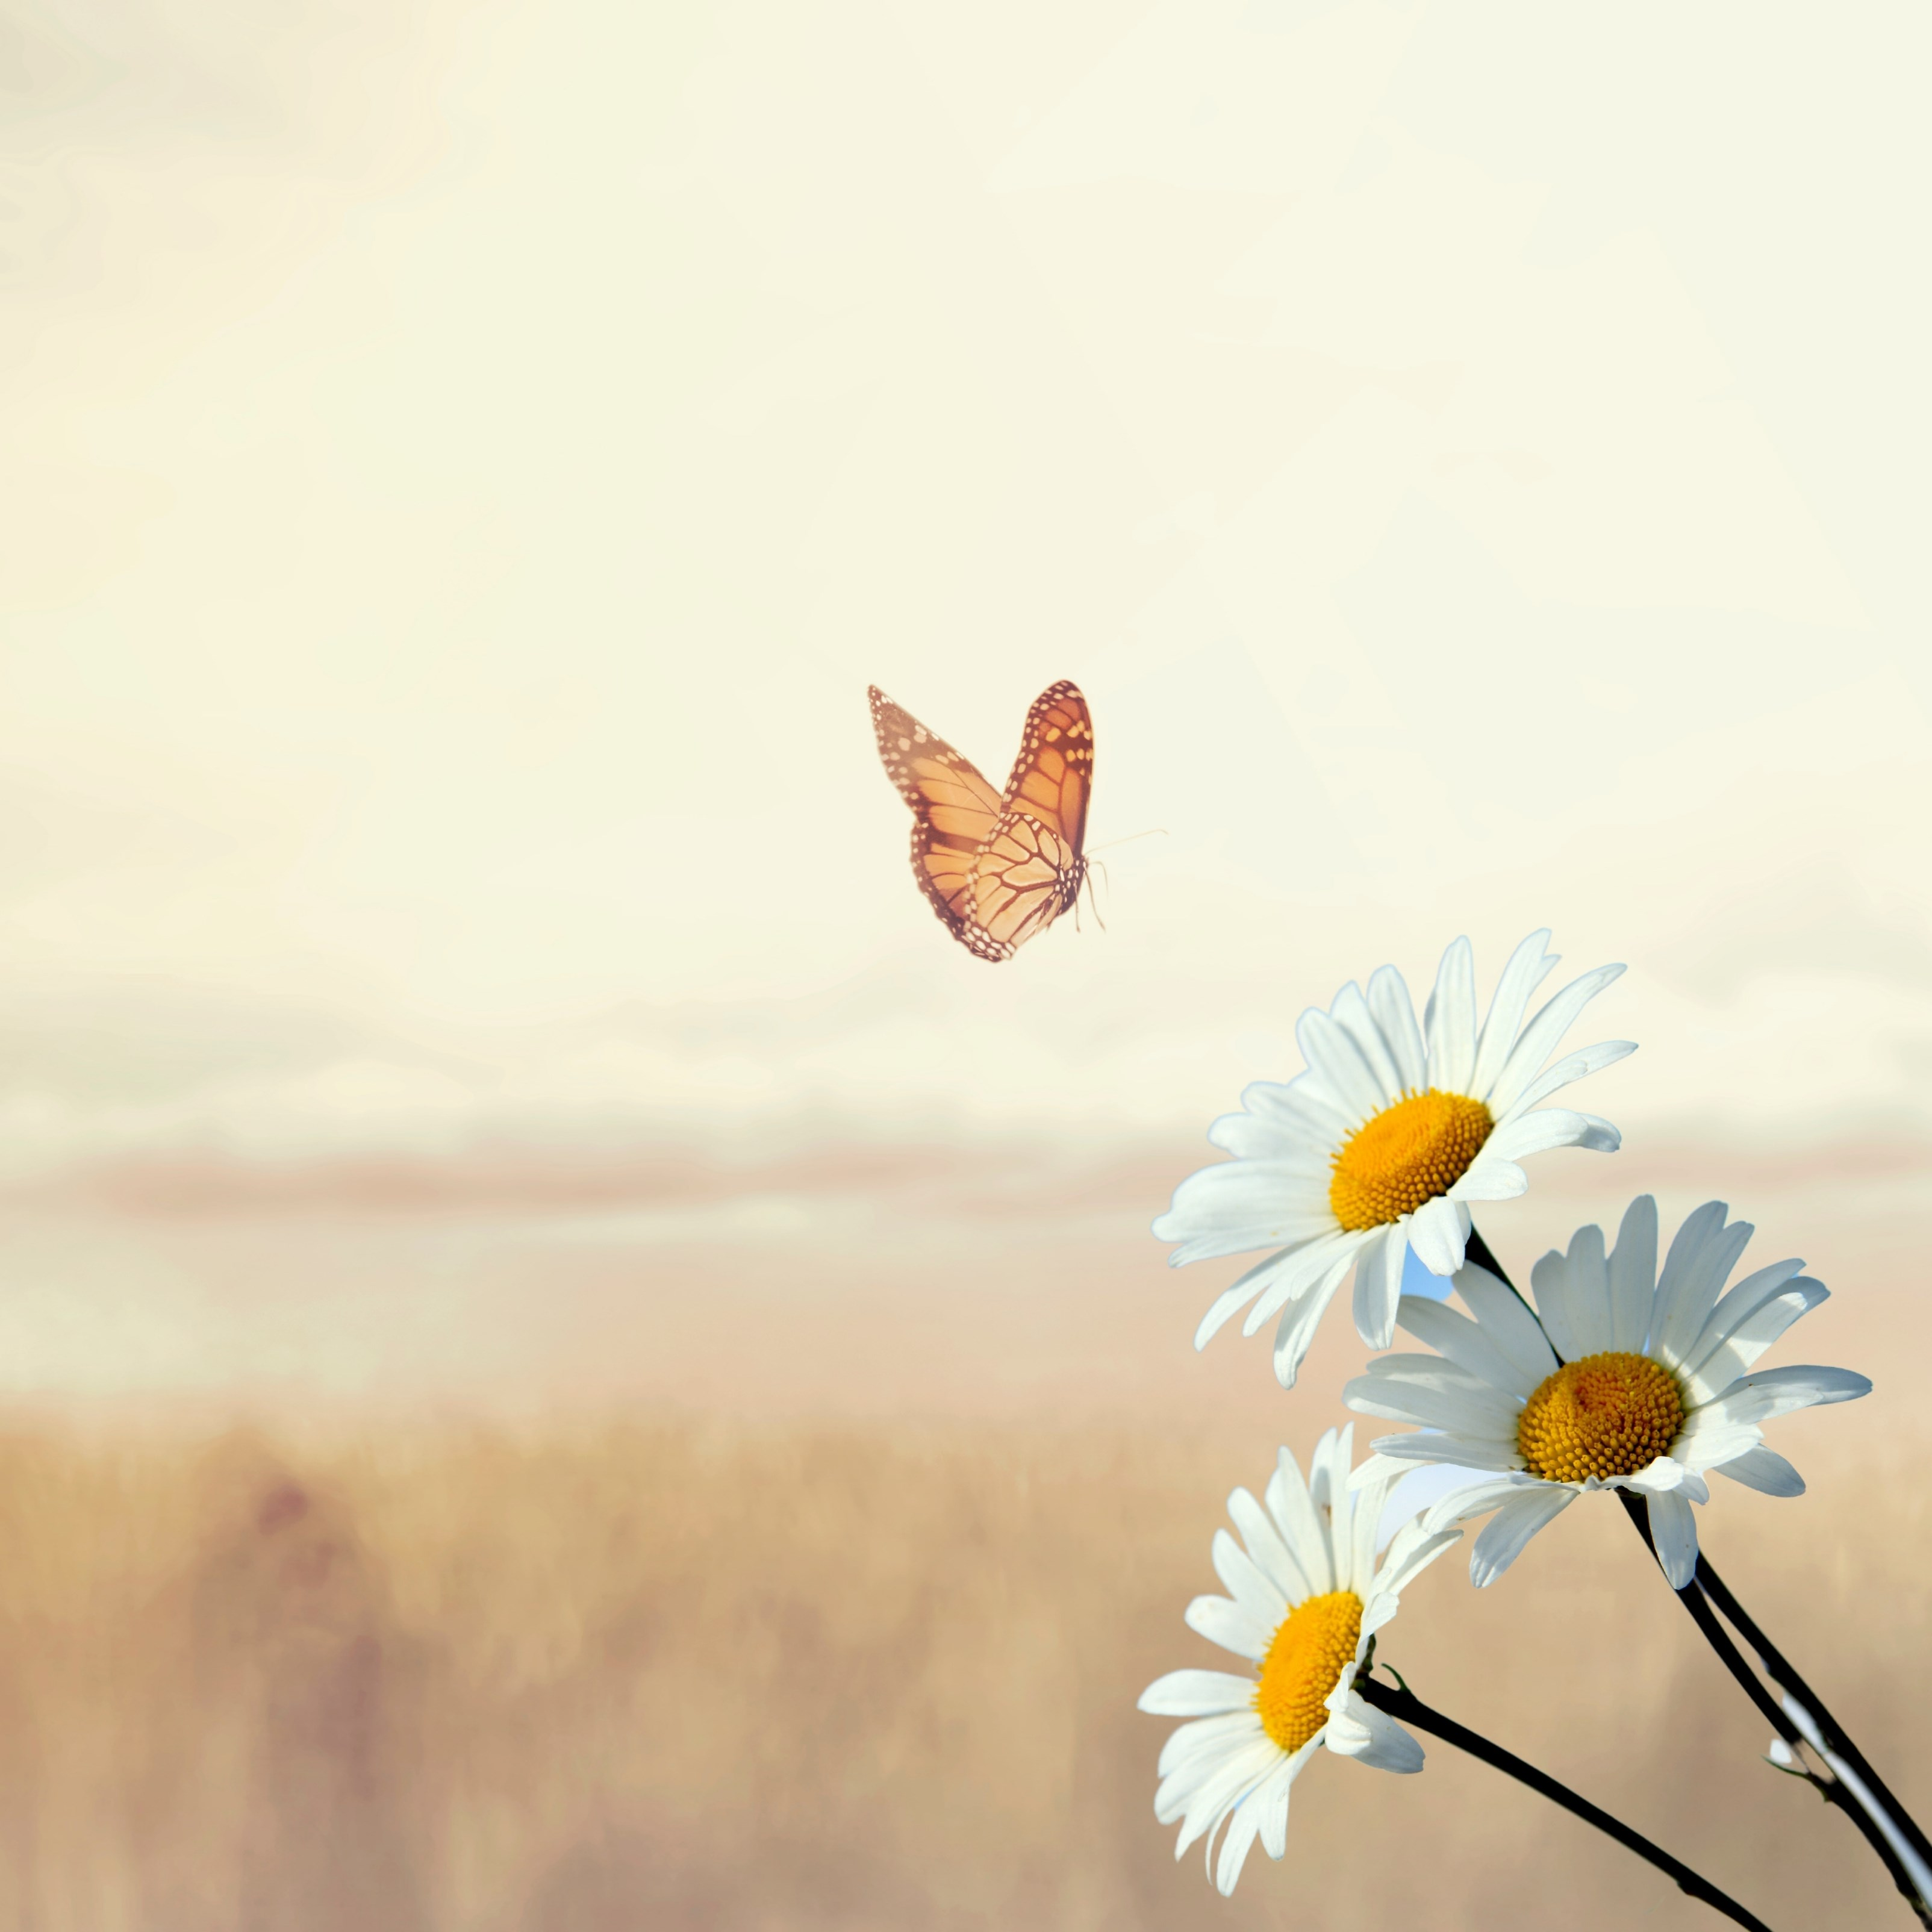 Butterfly Daisies Outdoors Flower Nature iPad Wallpaper